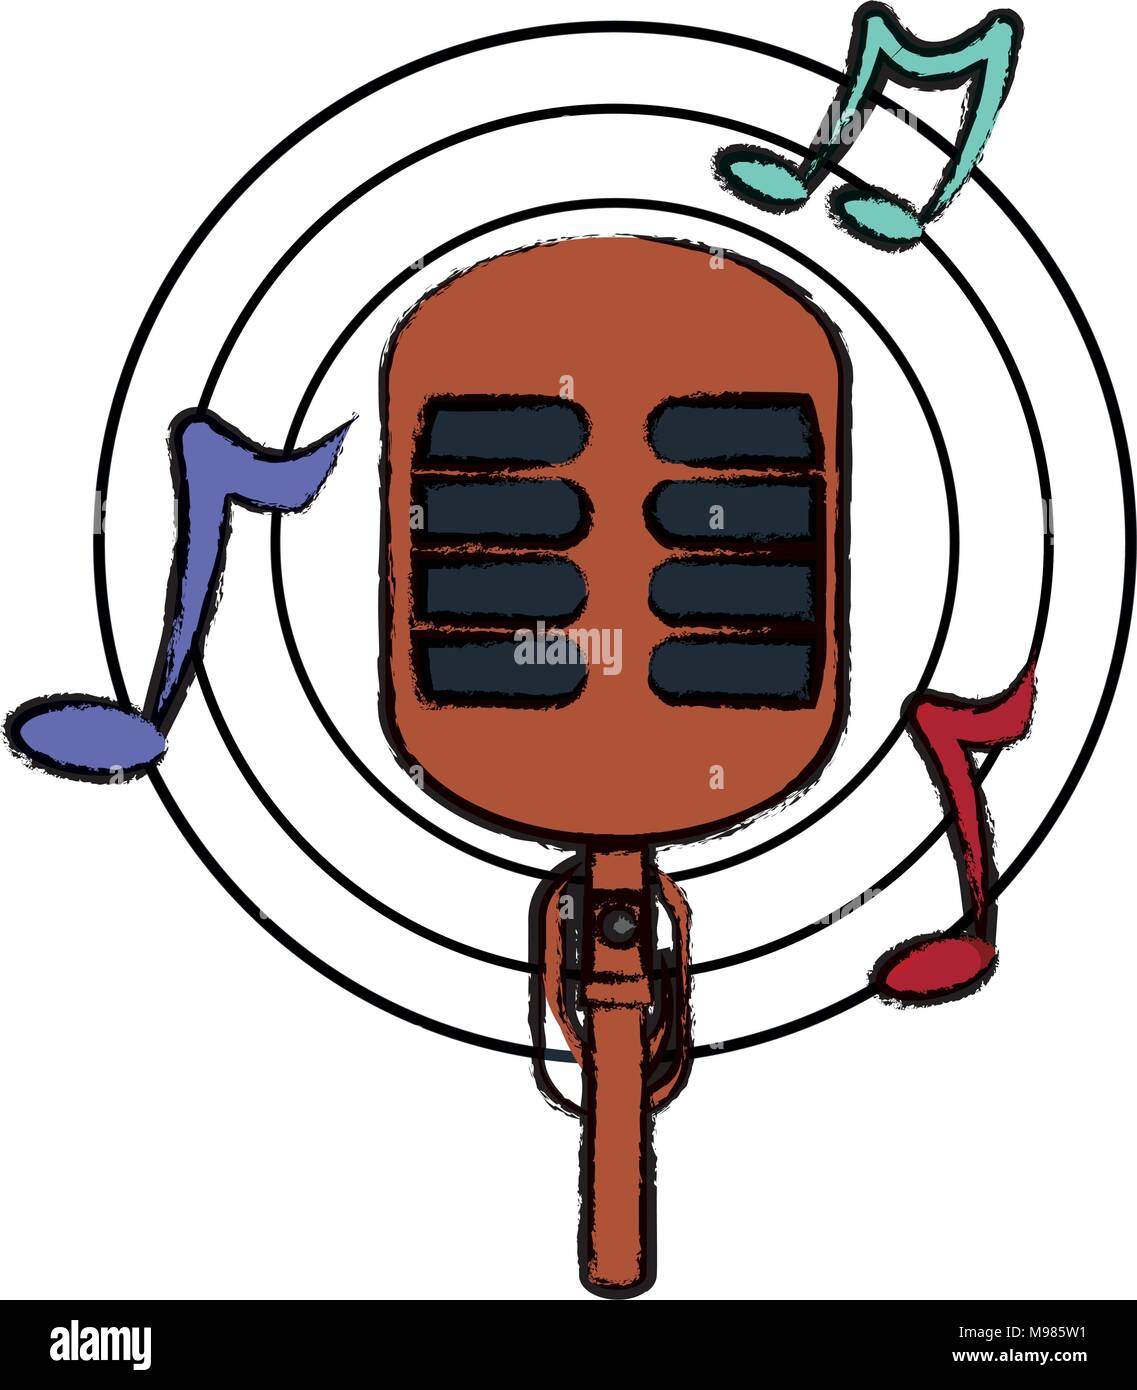 Illustration Musical Notes Microphone Stock Photos Illustration